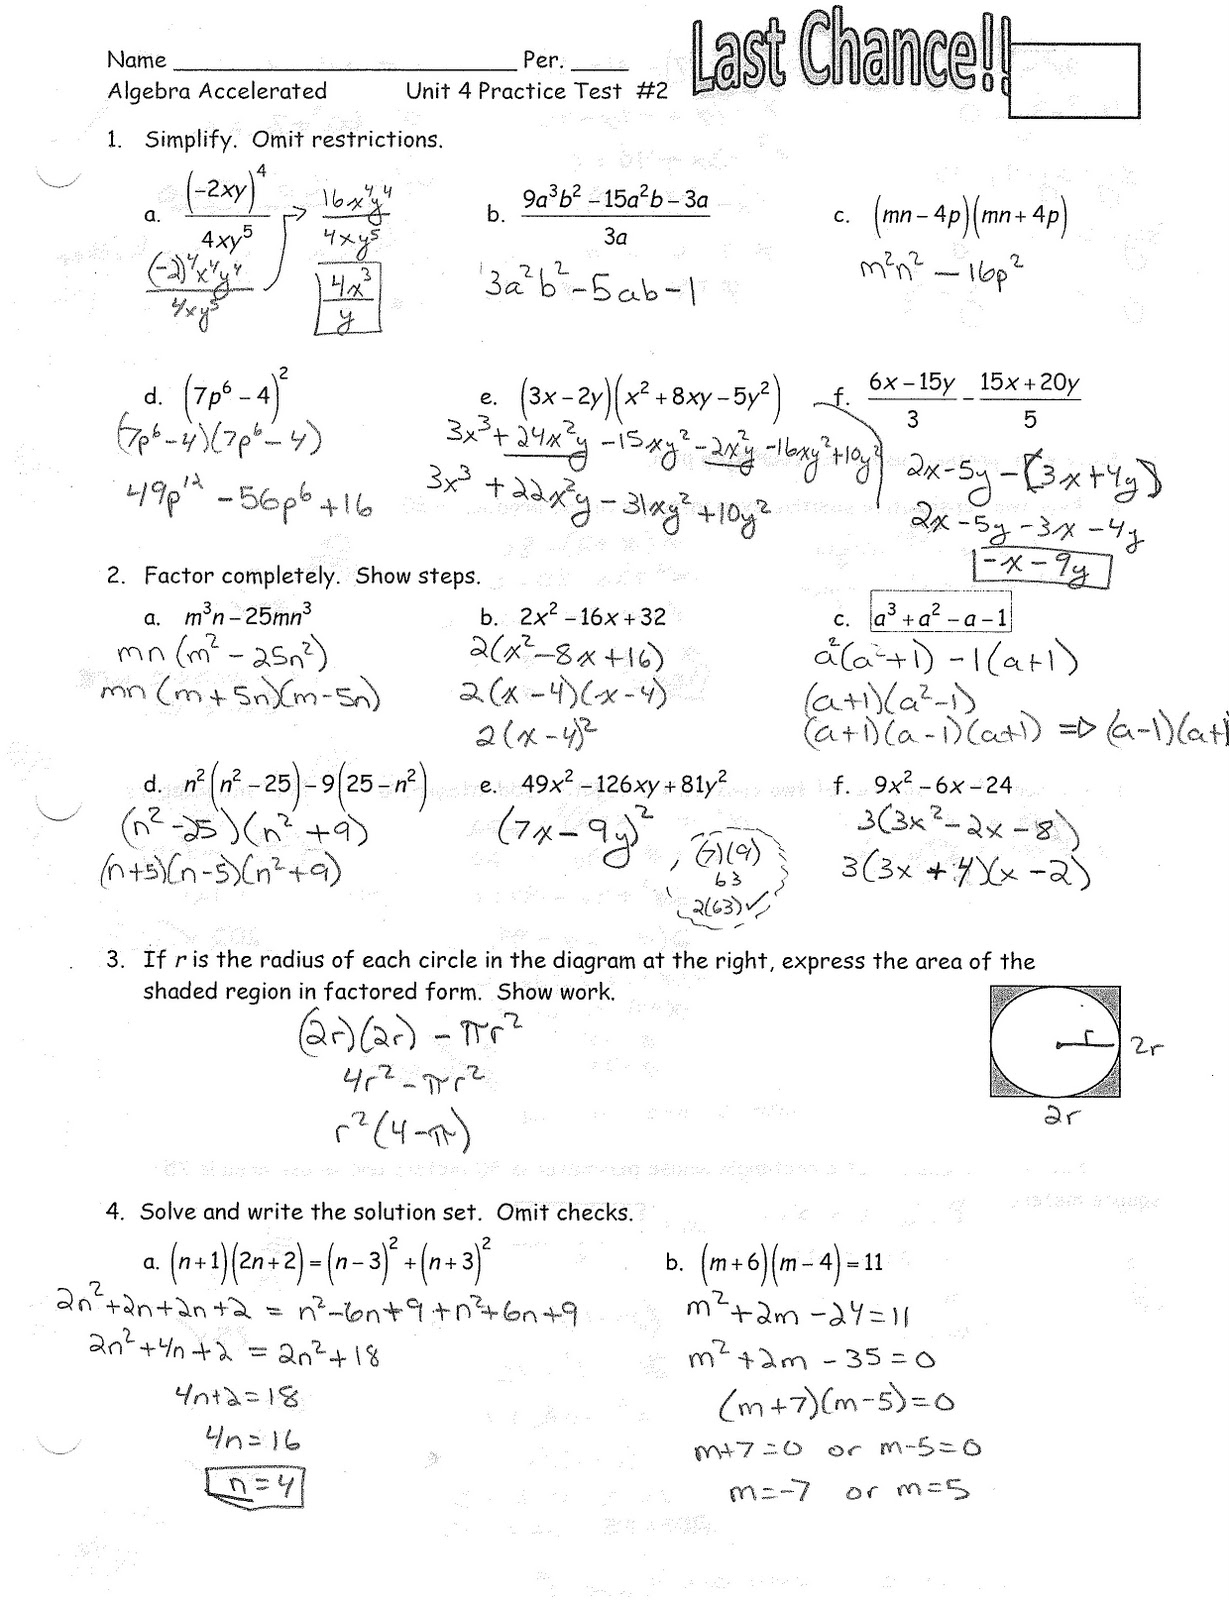 Iroquois Algebra Blog: Unit 4 Practice Test #2 Answer Key ...